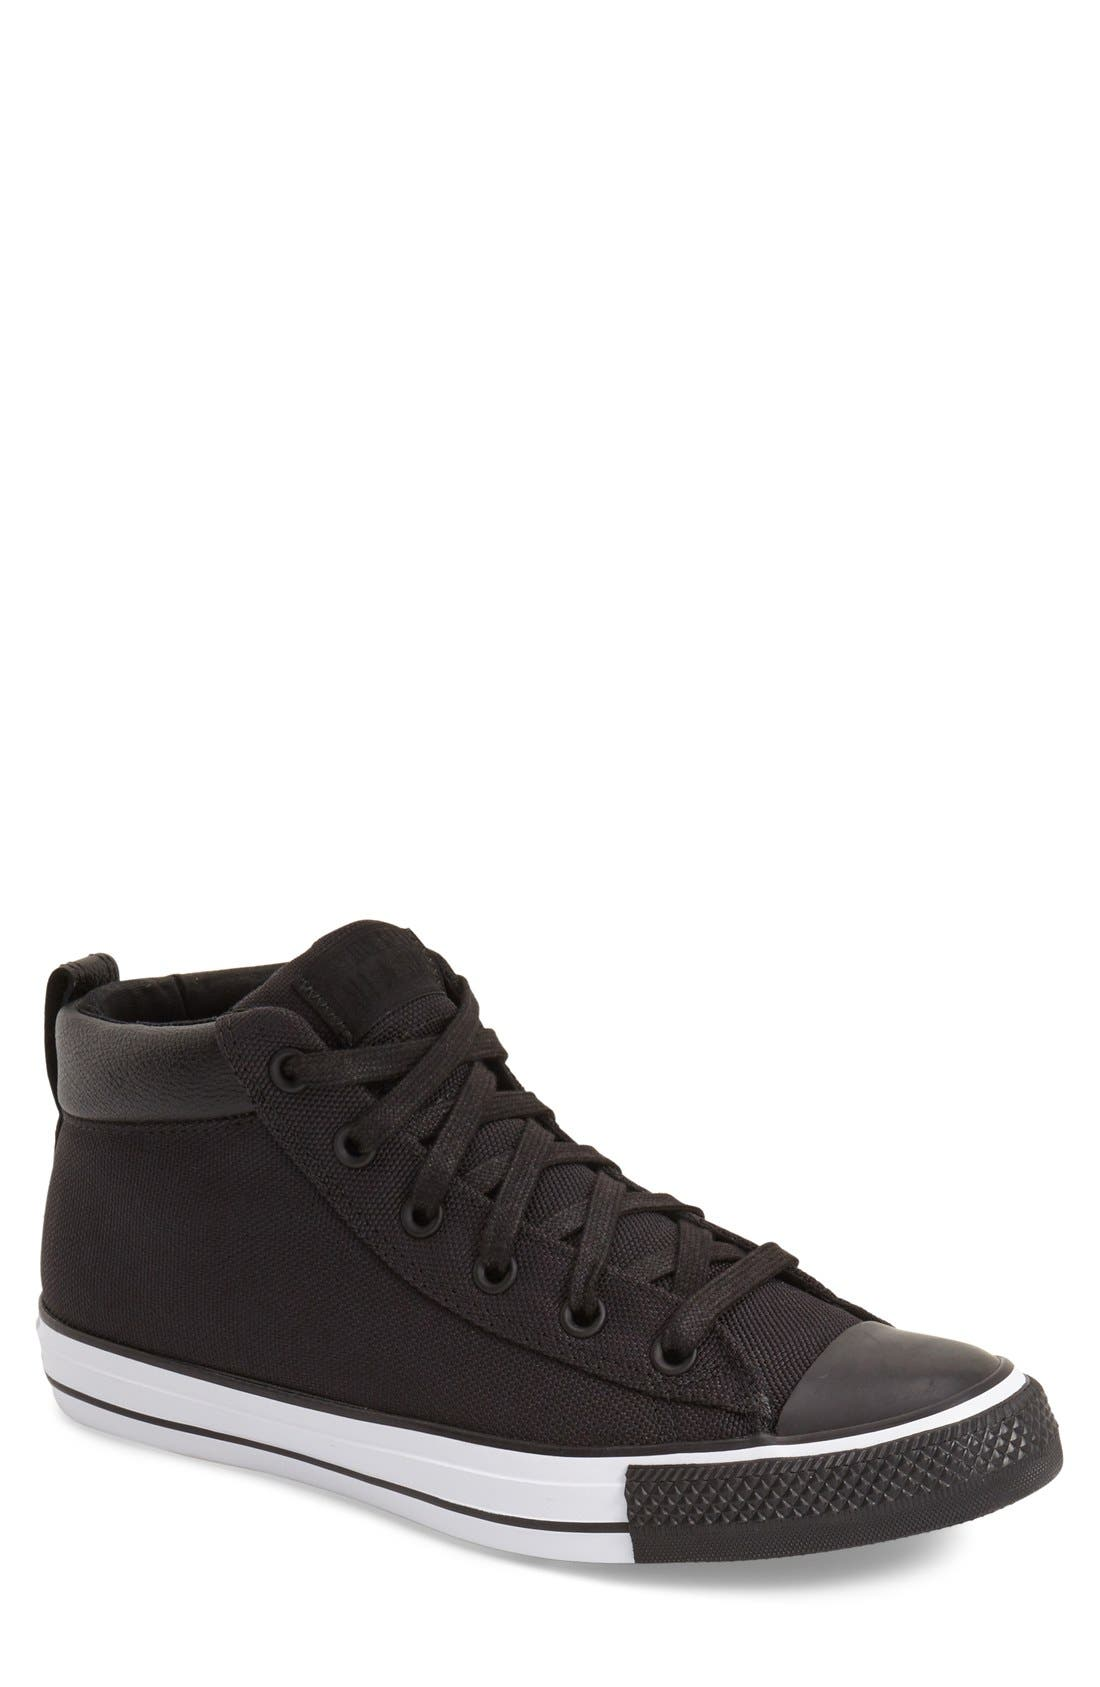 Alternate Image 1 Selected - Converse Chuck Taylor® All Star® 'Street' High Top Sneaker (Men)